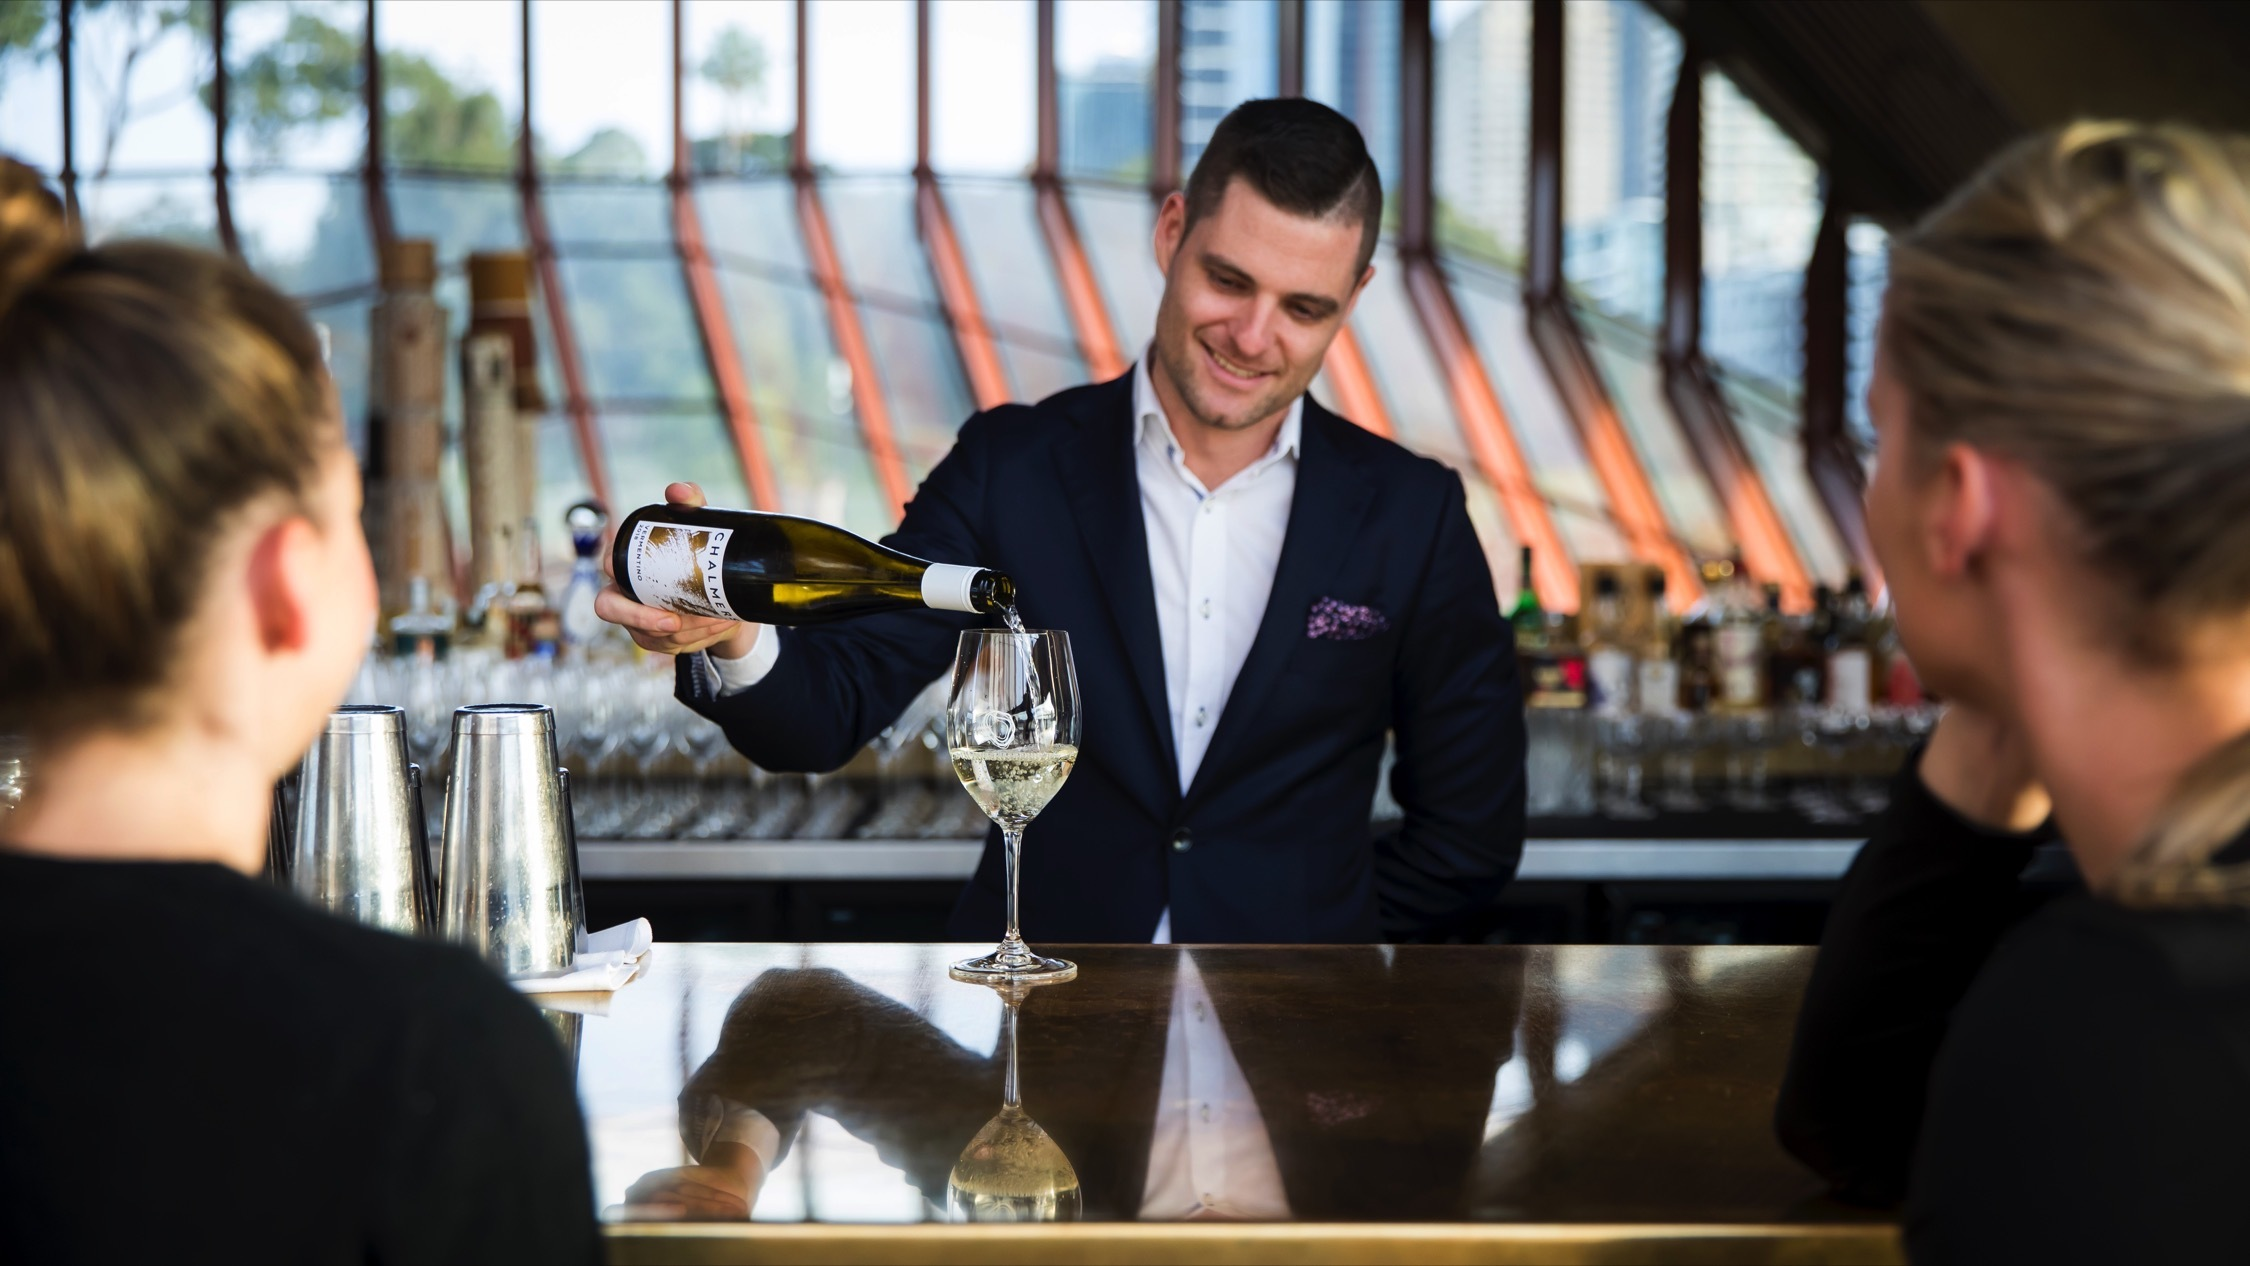 Person pouring glass of wine at Bennelong